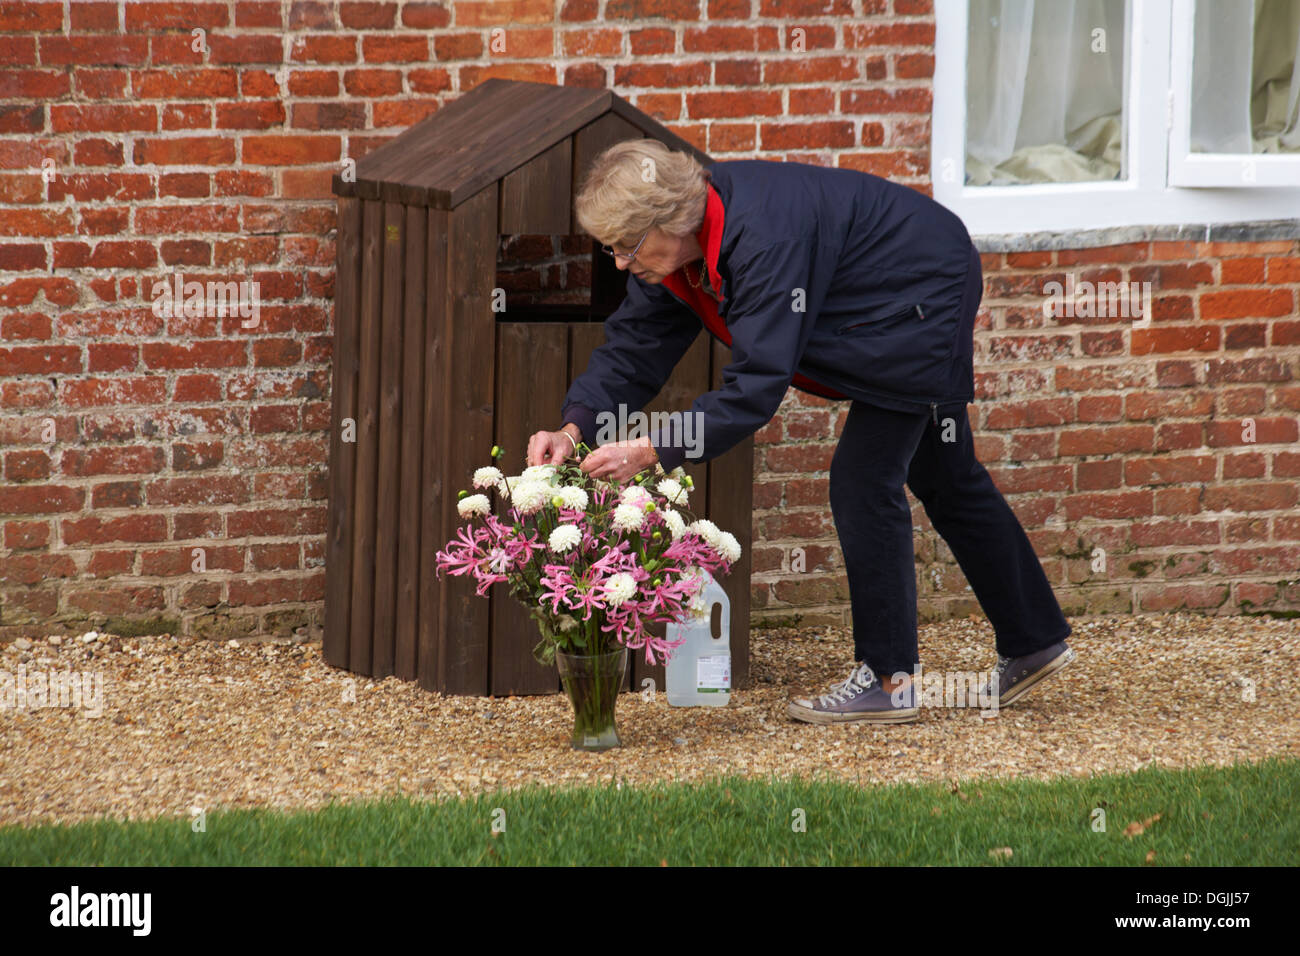 woman tidying up bunch of flowers in vase at Buckler's Hard - Stock Image